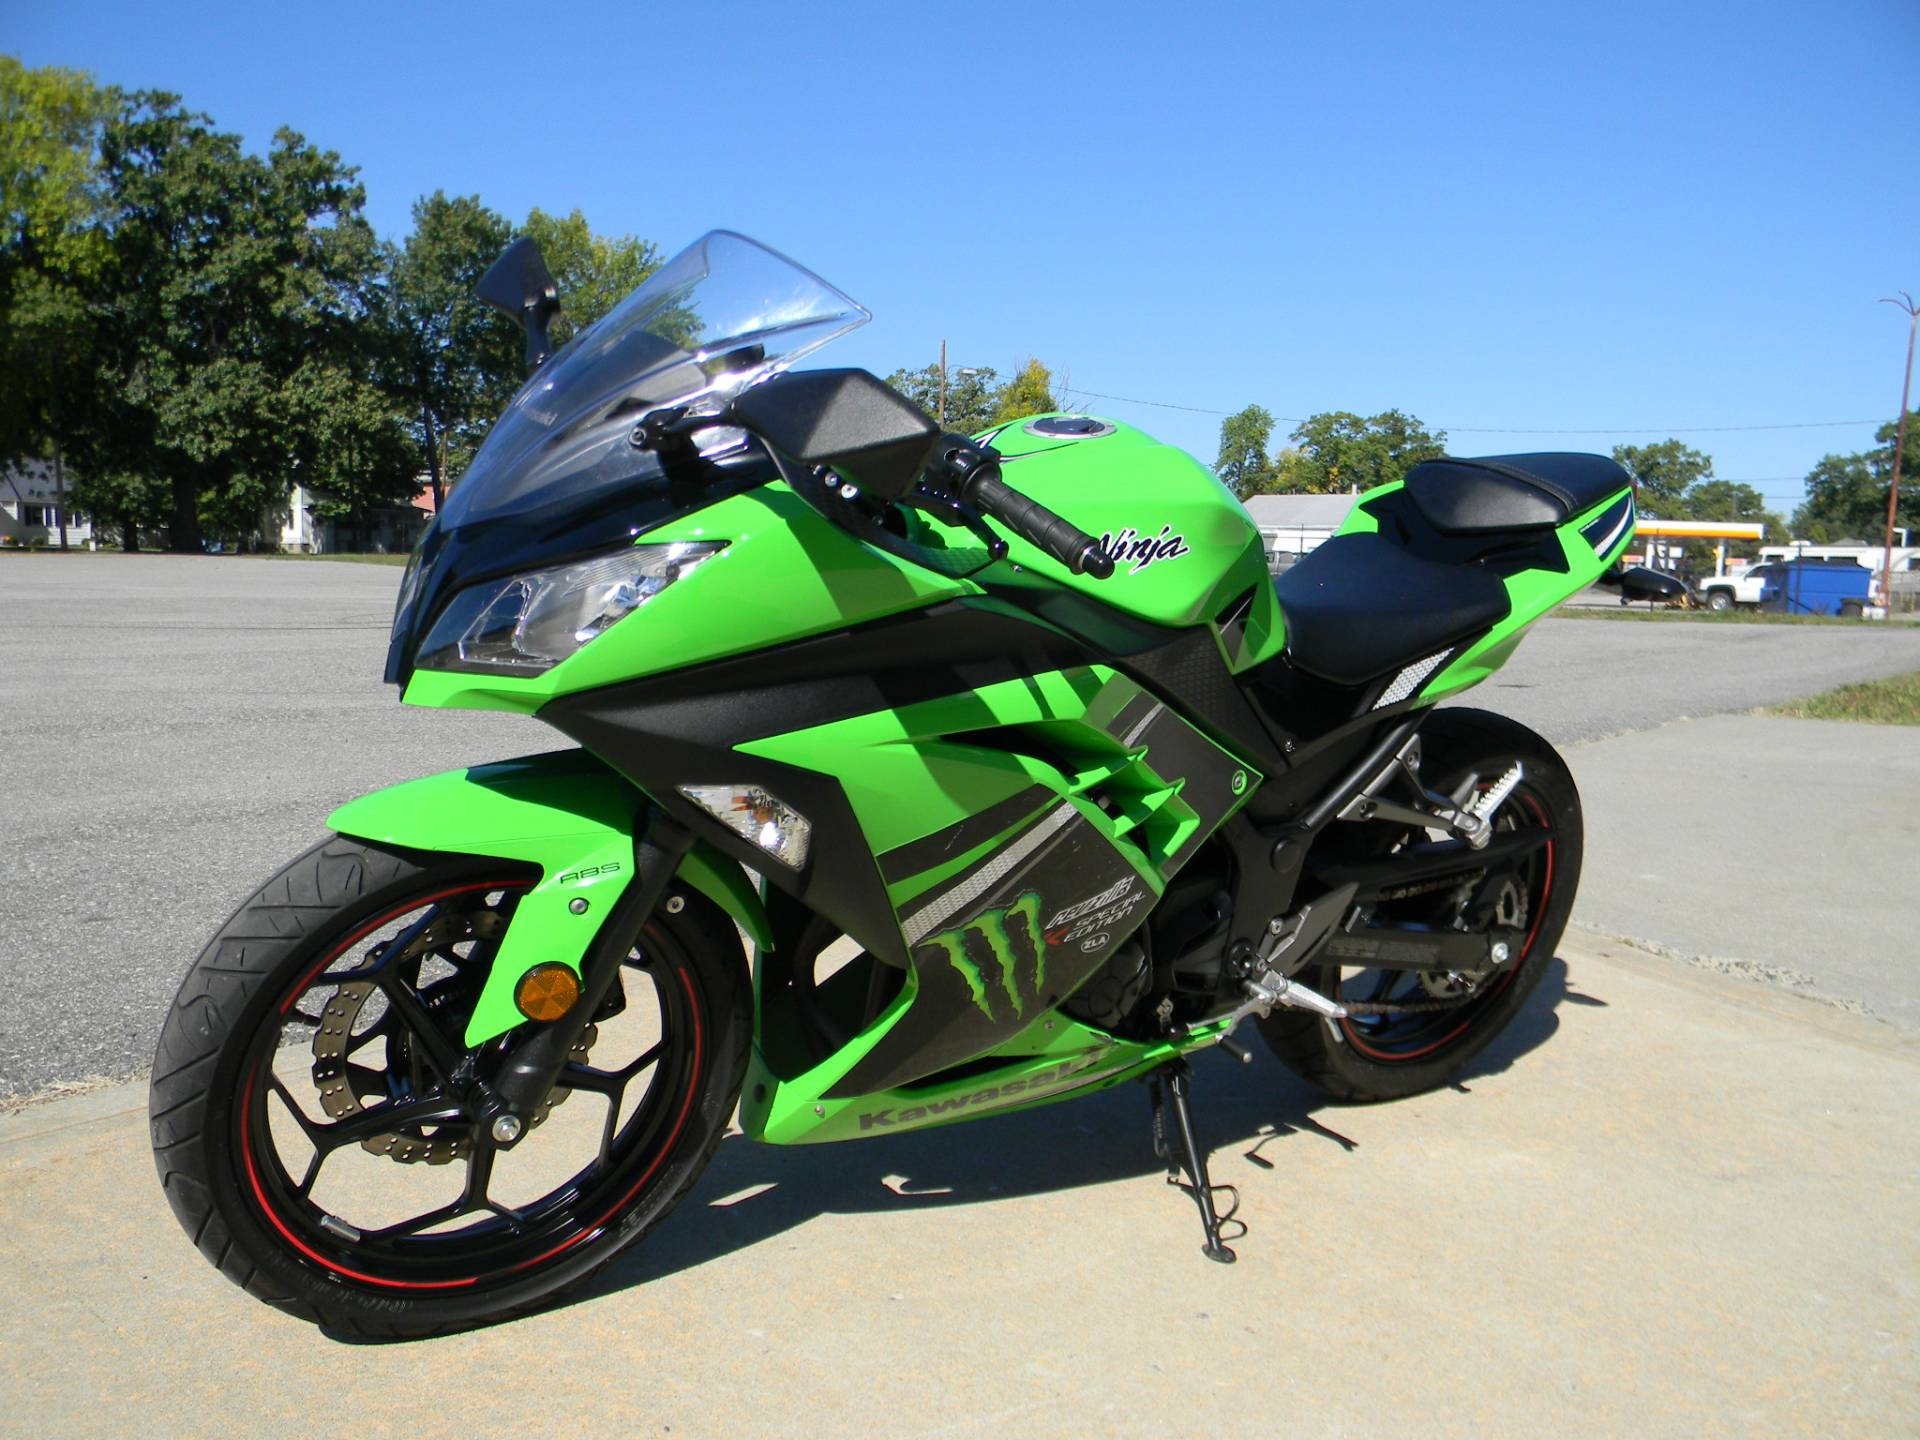 2014 kawasaki ninja 300 abs se for sale springfield ma 579653. Black Bedroom Furniture Sets. Home Design Ideas